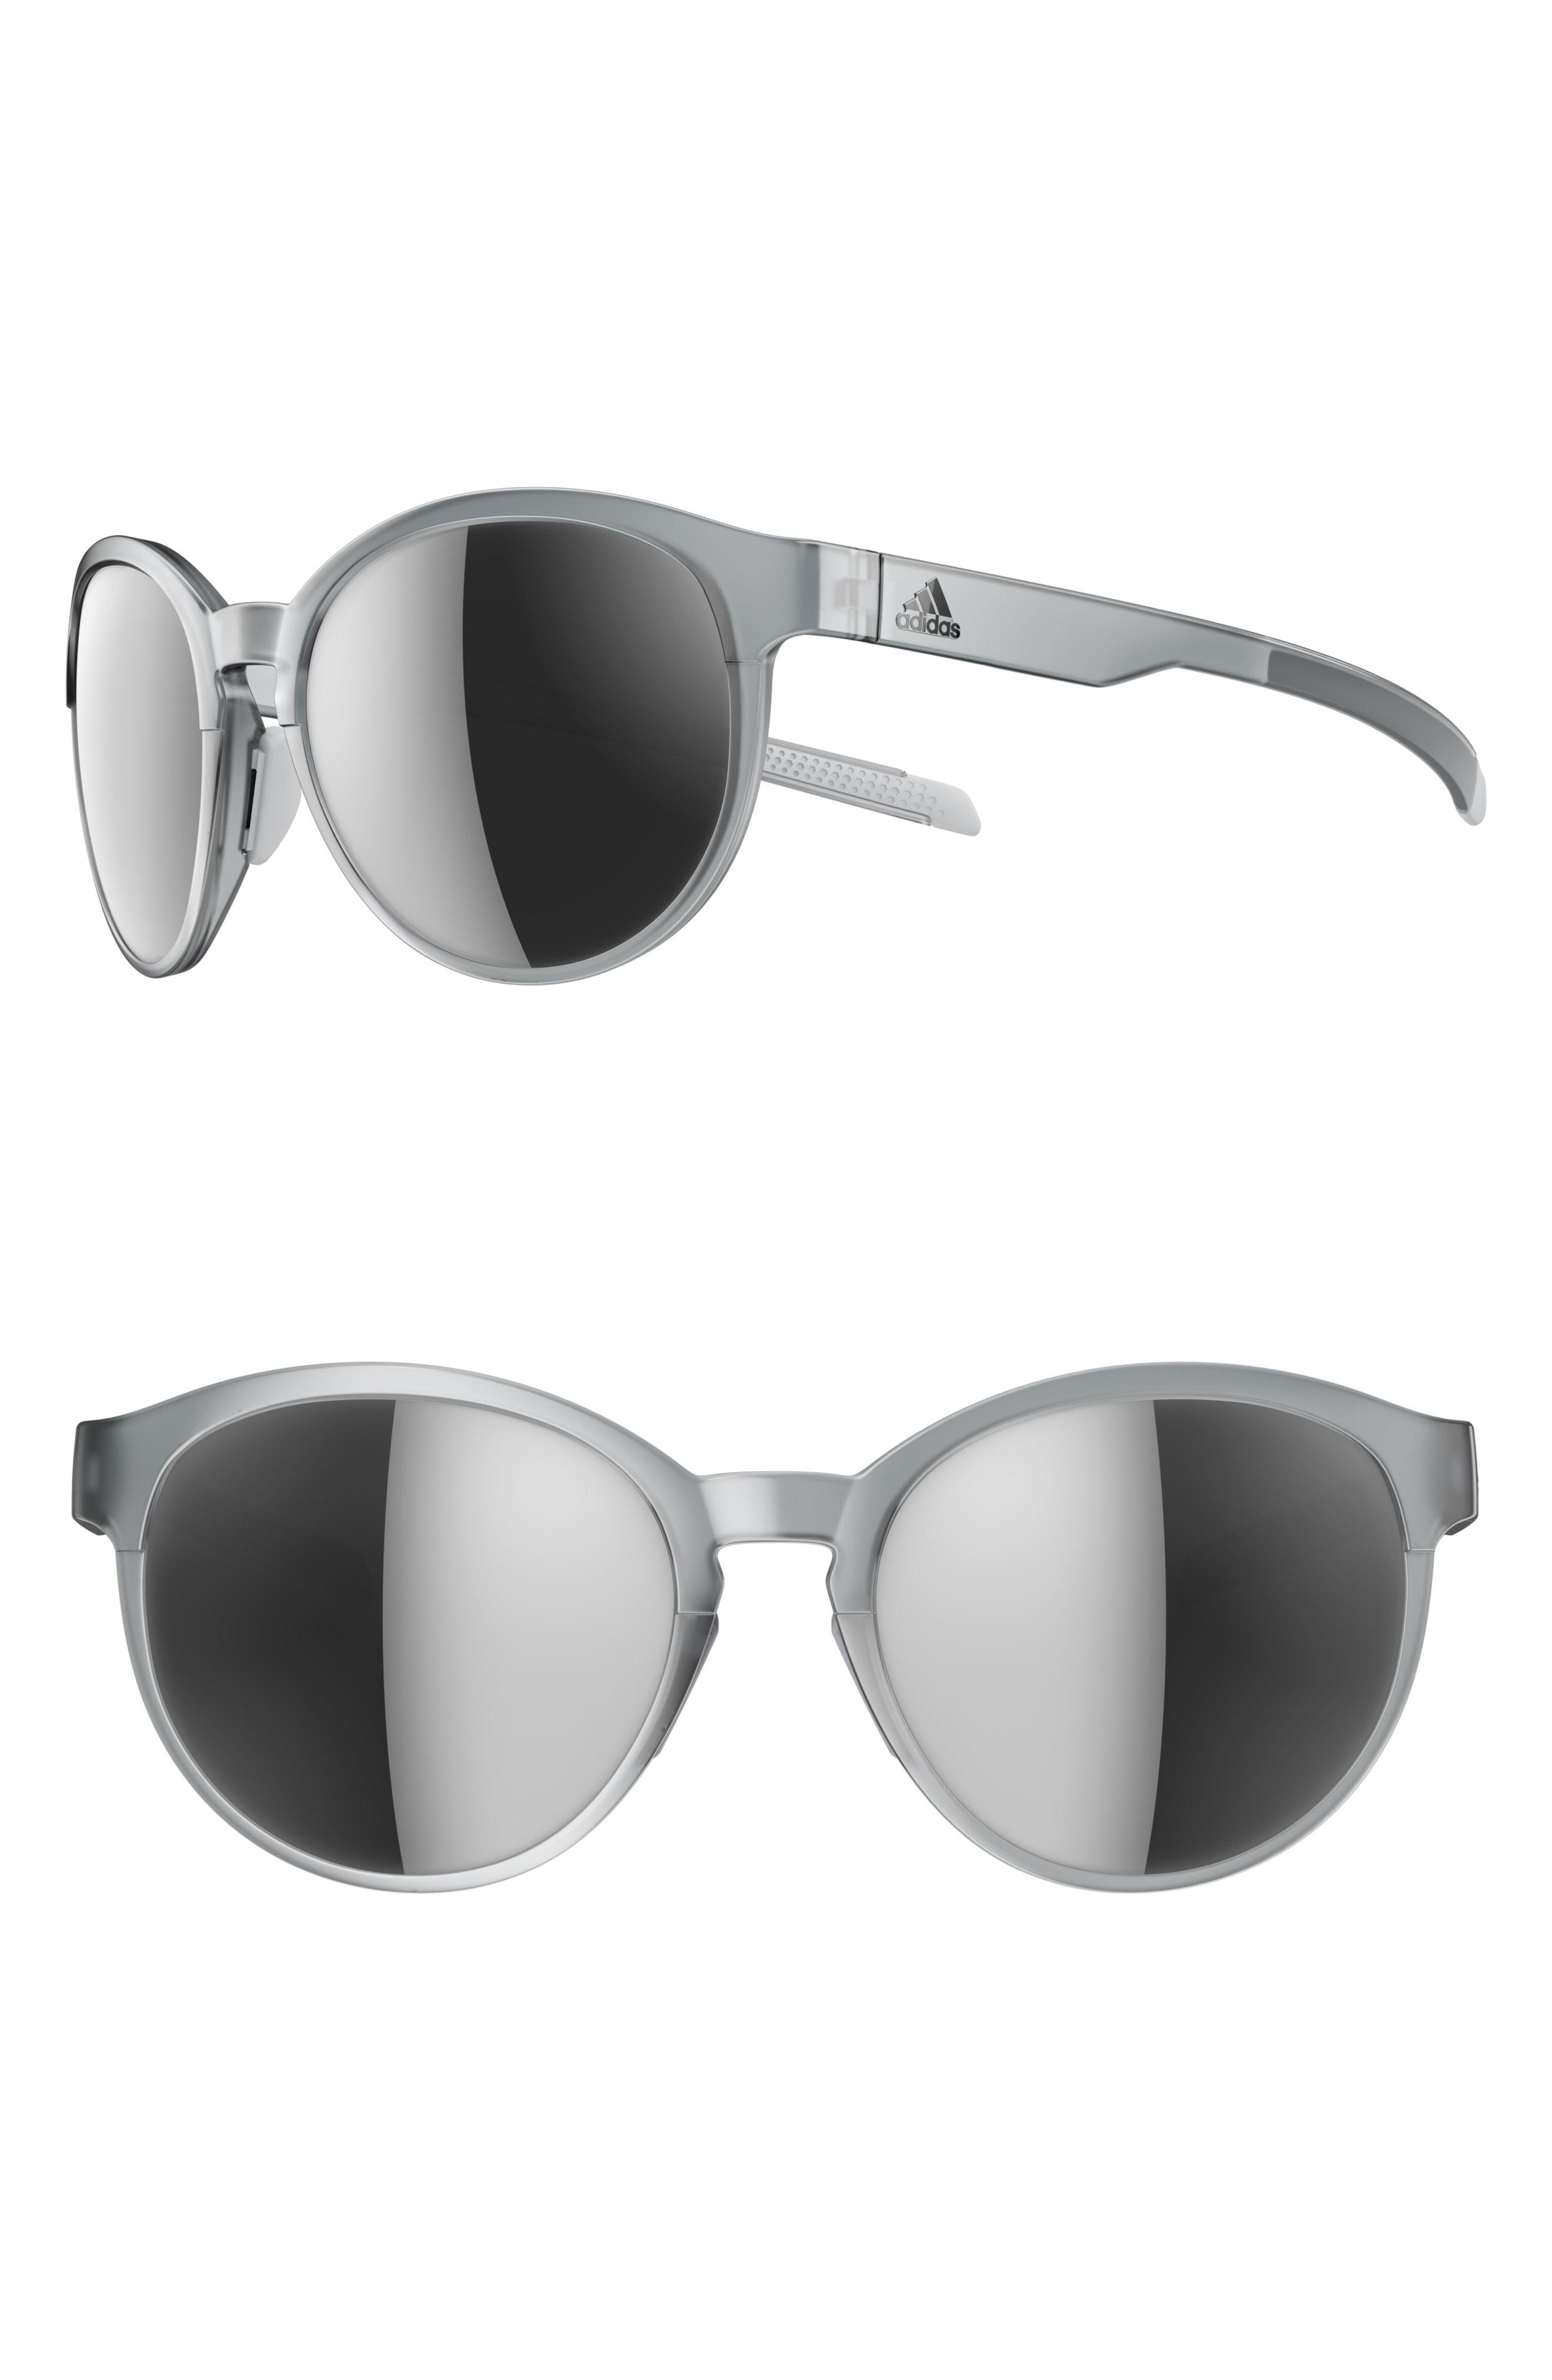 a72a35129c19 Lyst - Adidas Beyonder 55mm Mirrored Training Sunglasses in Gray